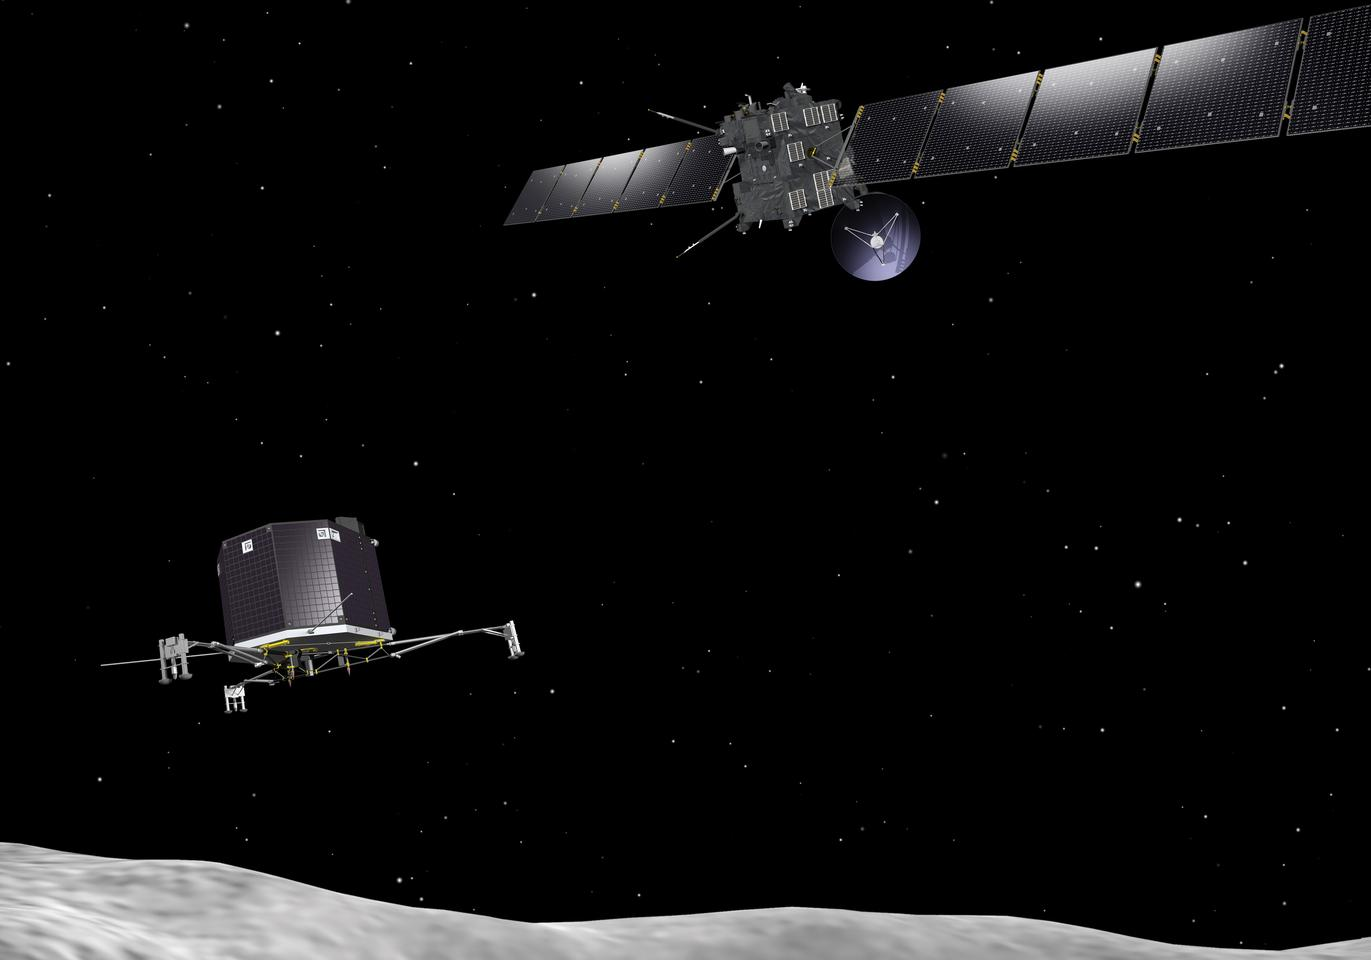 Artist's concept of the Rosetta orbiter and the Philae lander (Image: ESA)